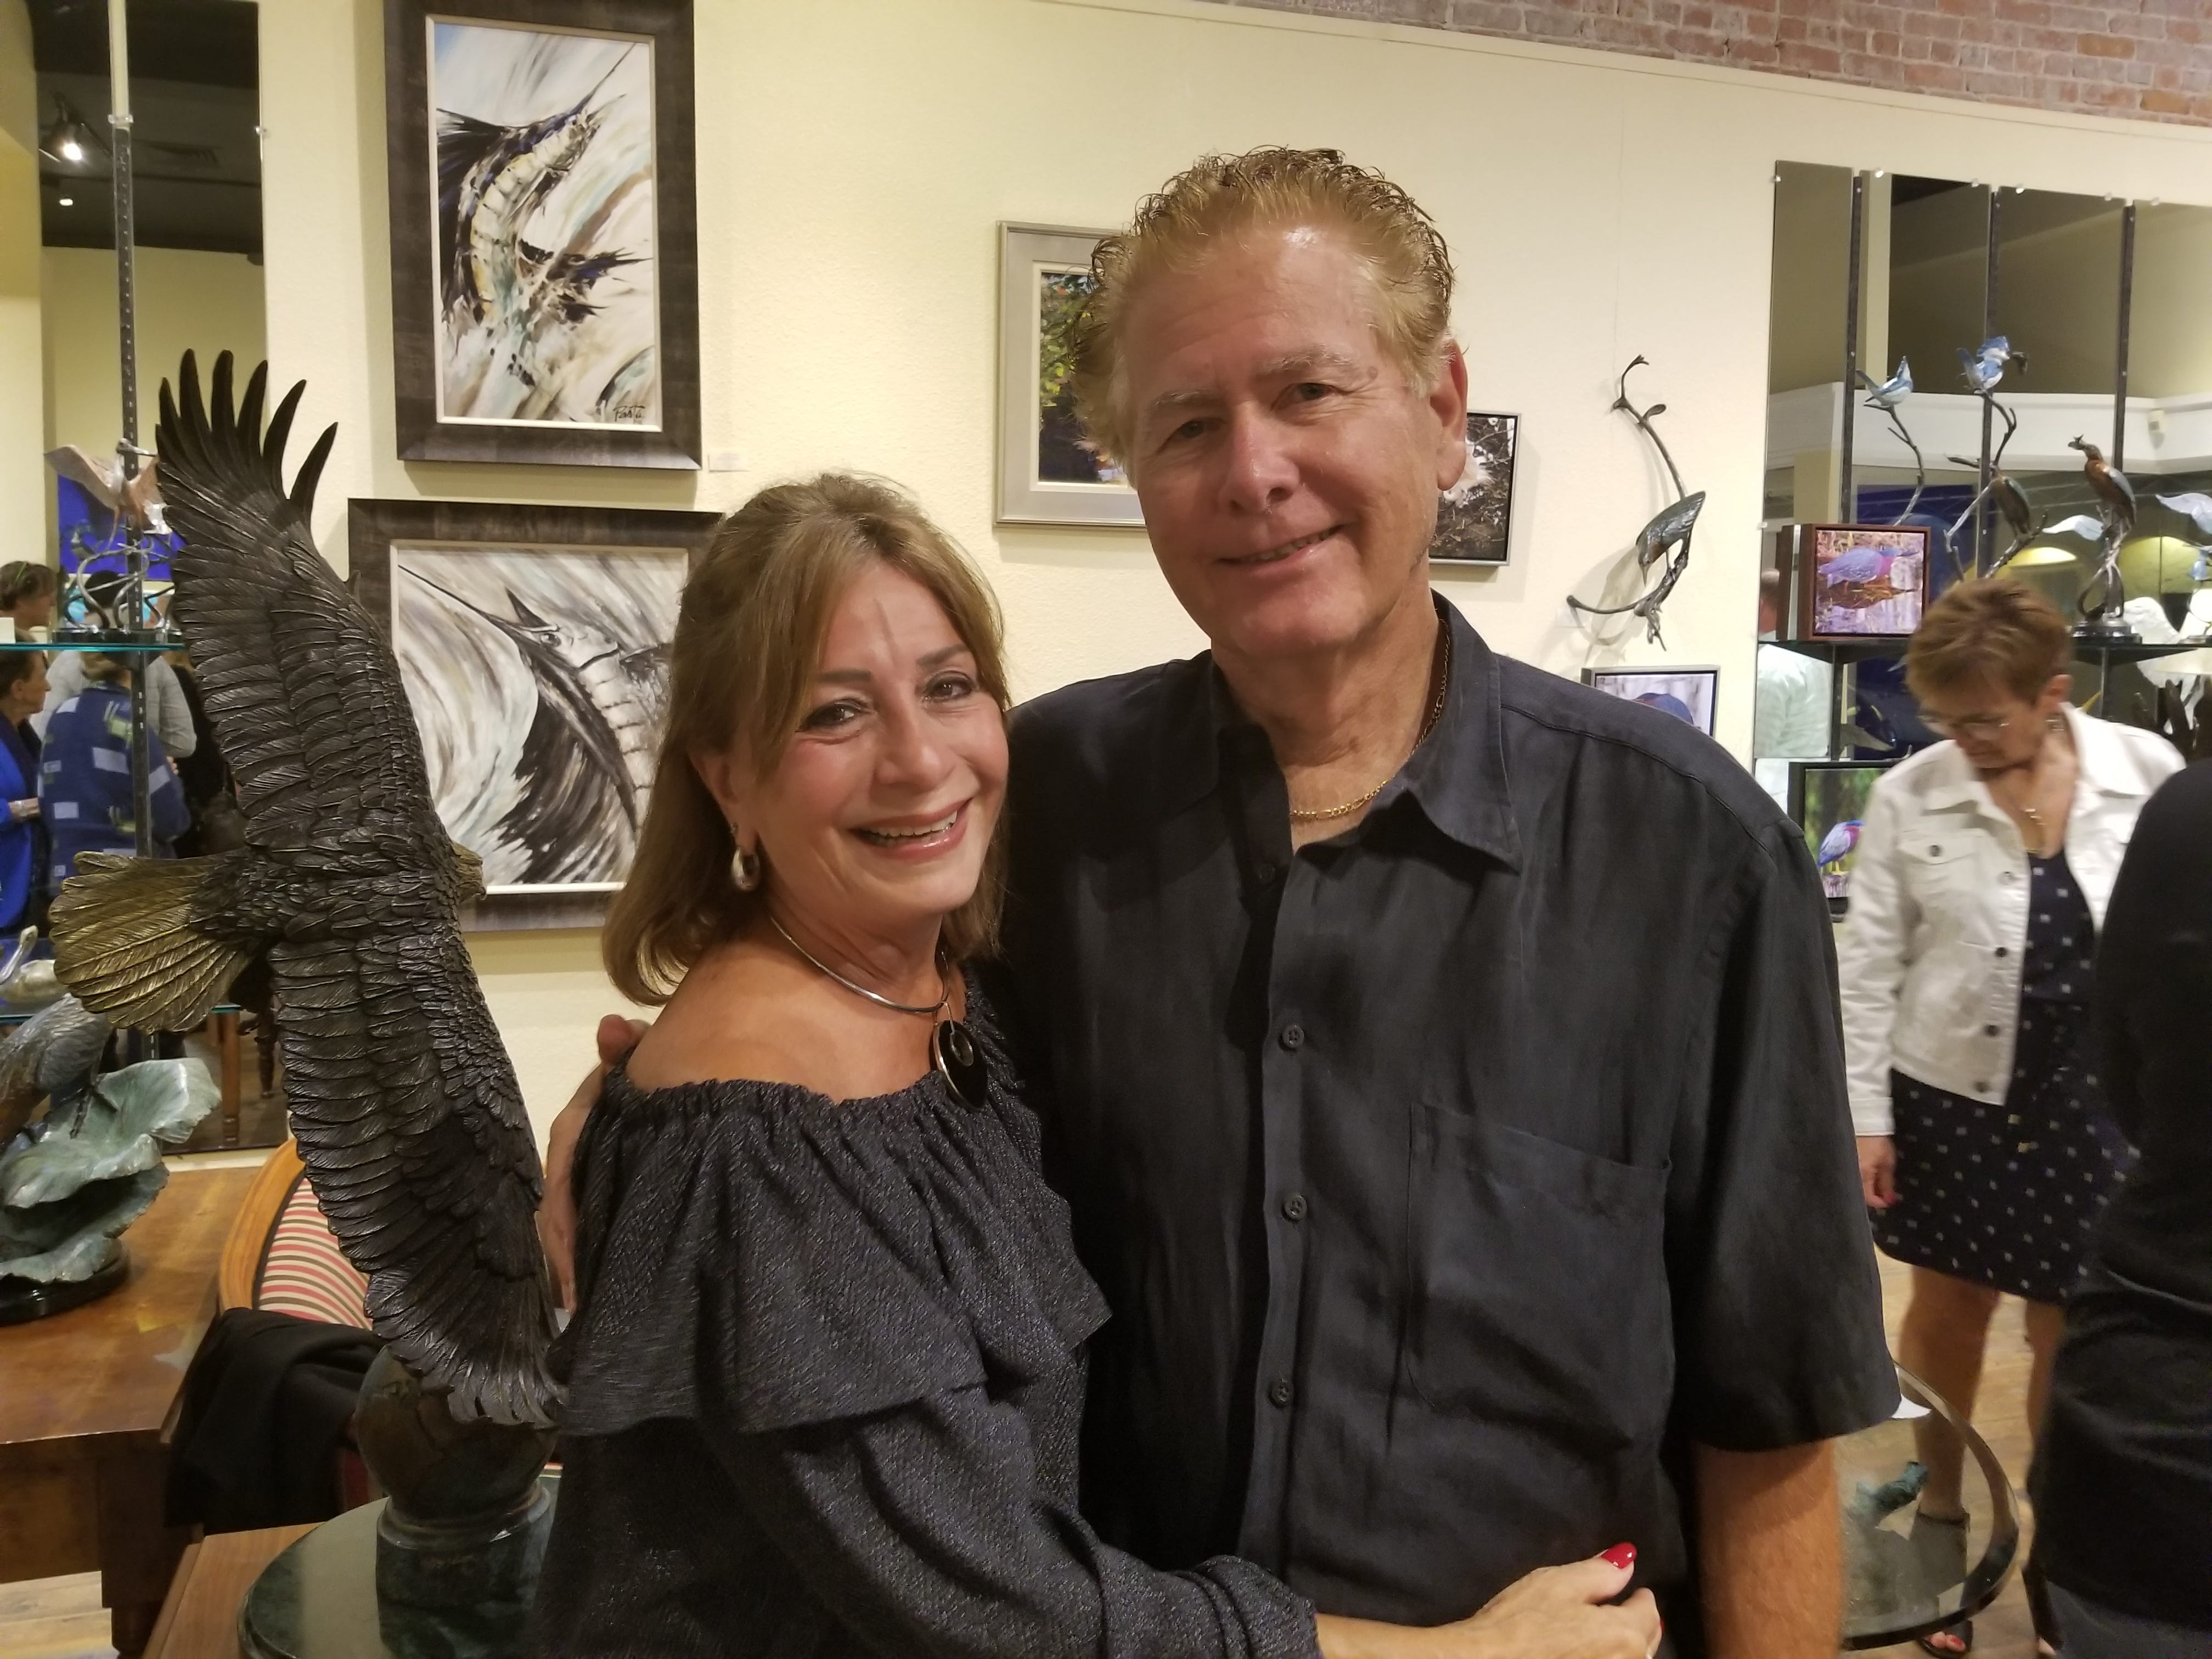 Tykes & Teens recently partnered with Stuart'sLyric Theatre and Geoffrey Smith Gallery to host a rocking evening of fun for Tykes & Teens supporters. Pictured are Lorett and Gerry Fribourg.